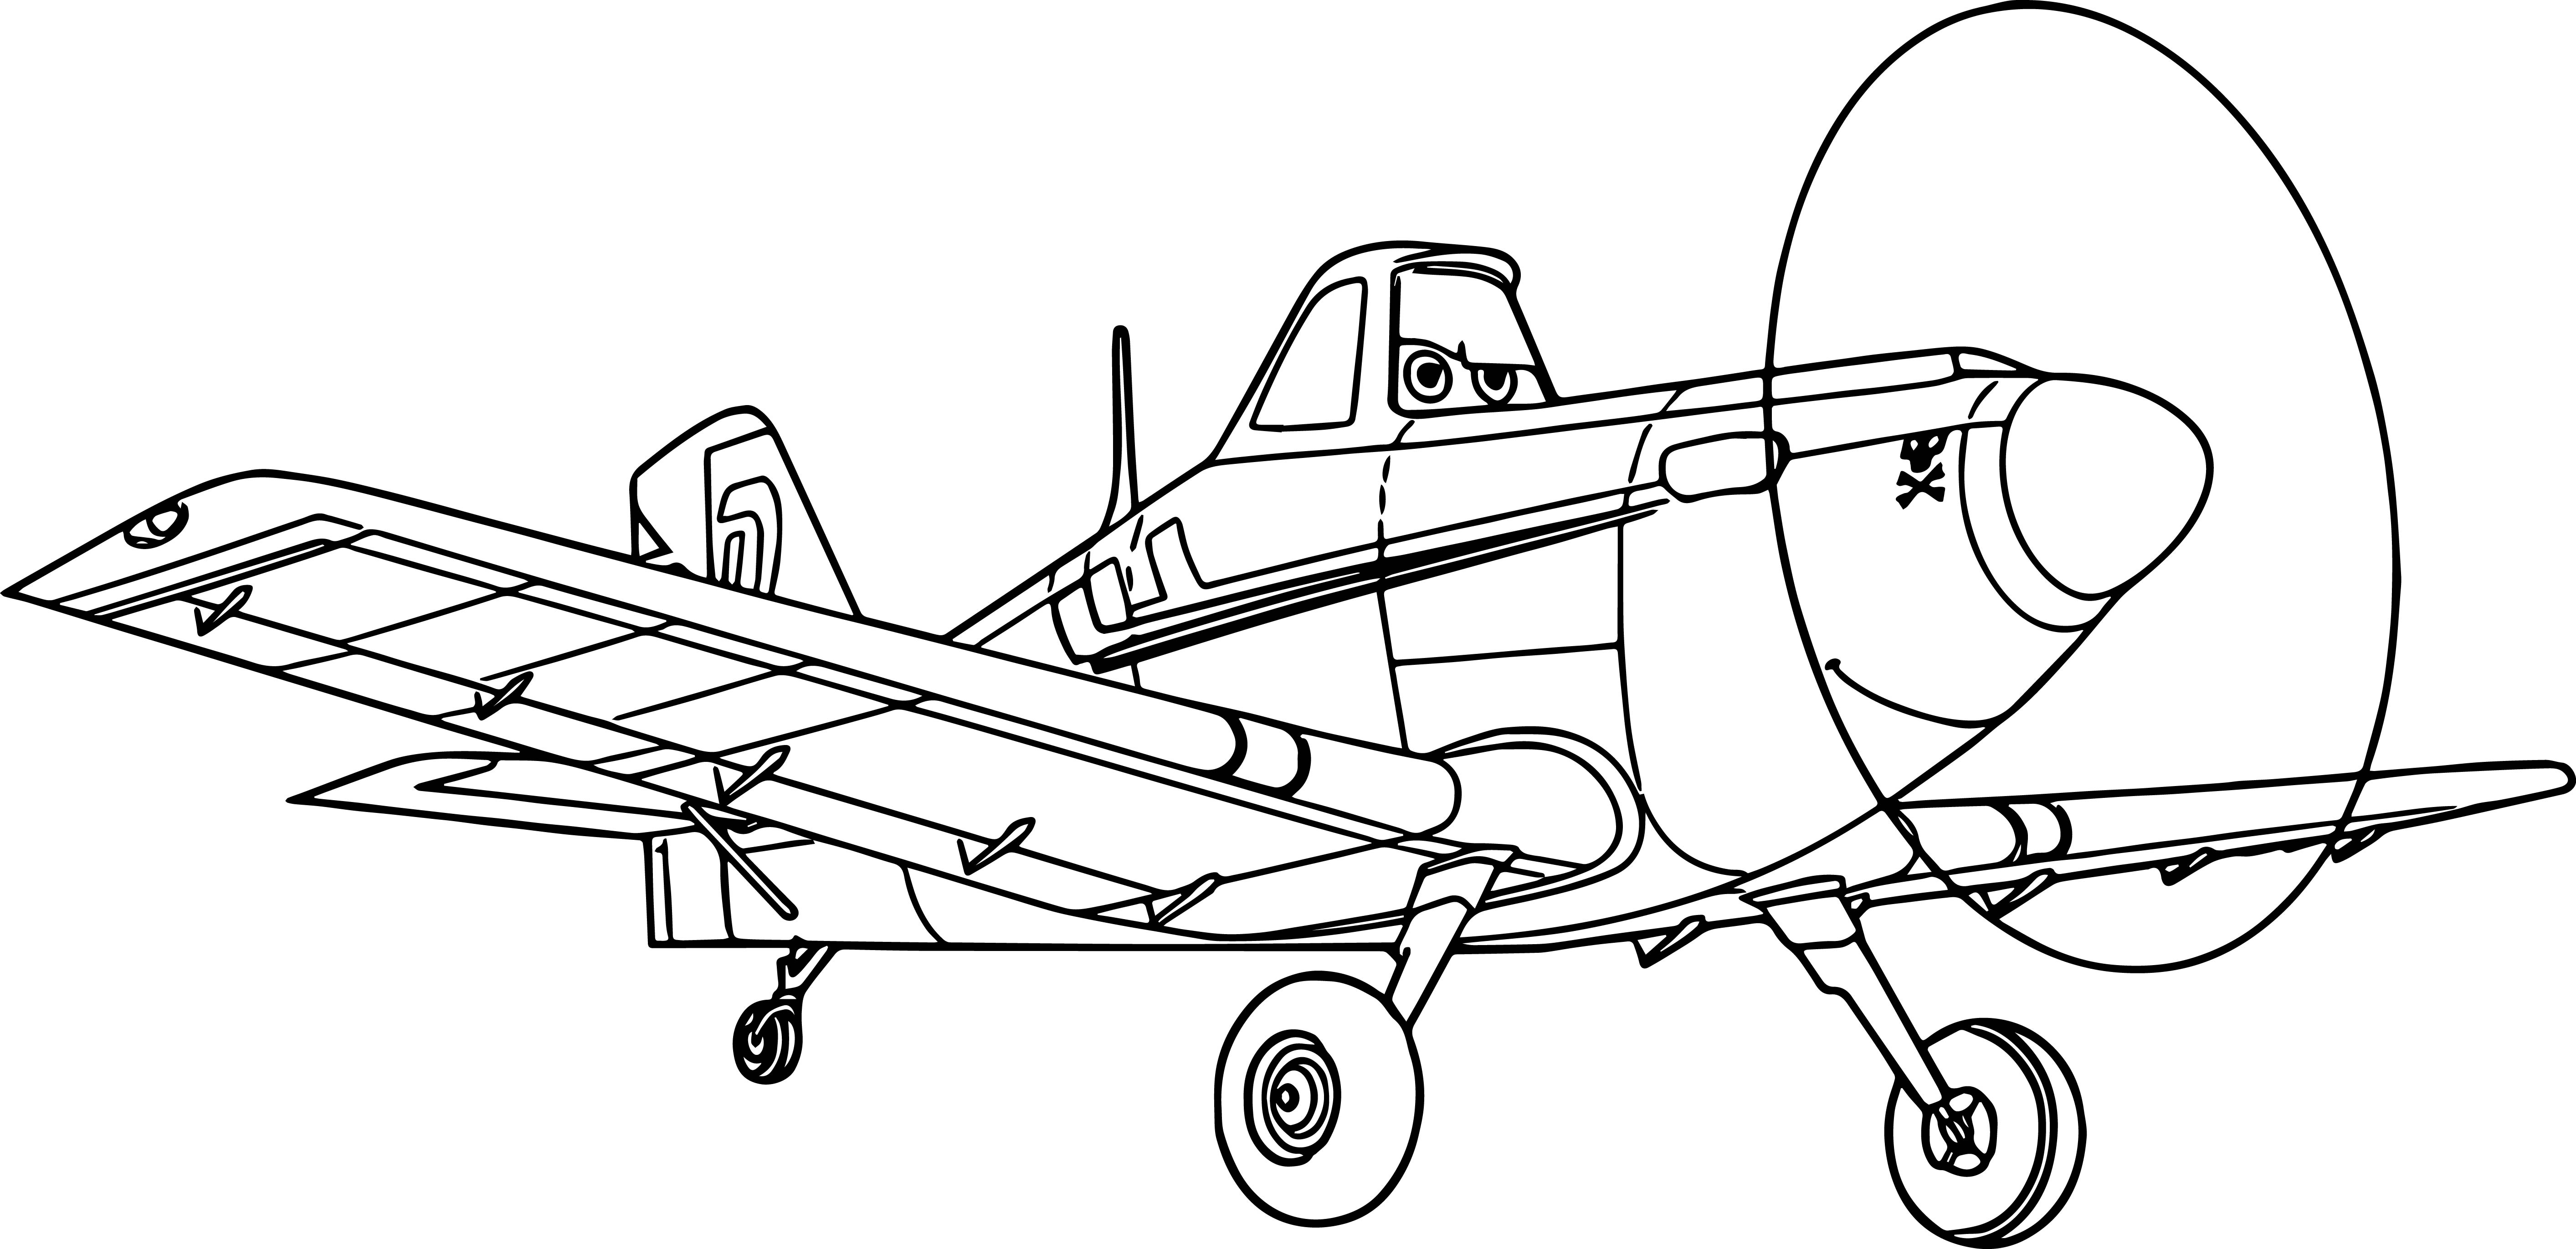 coloring page airplane print download the sophisticated transportation of coloring airplane page